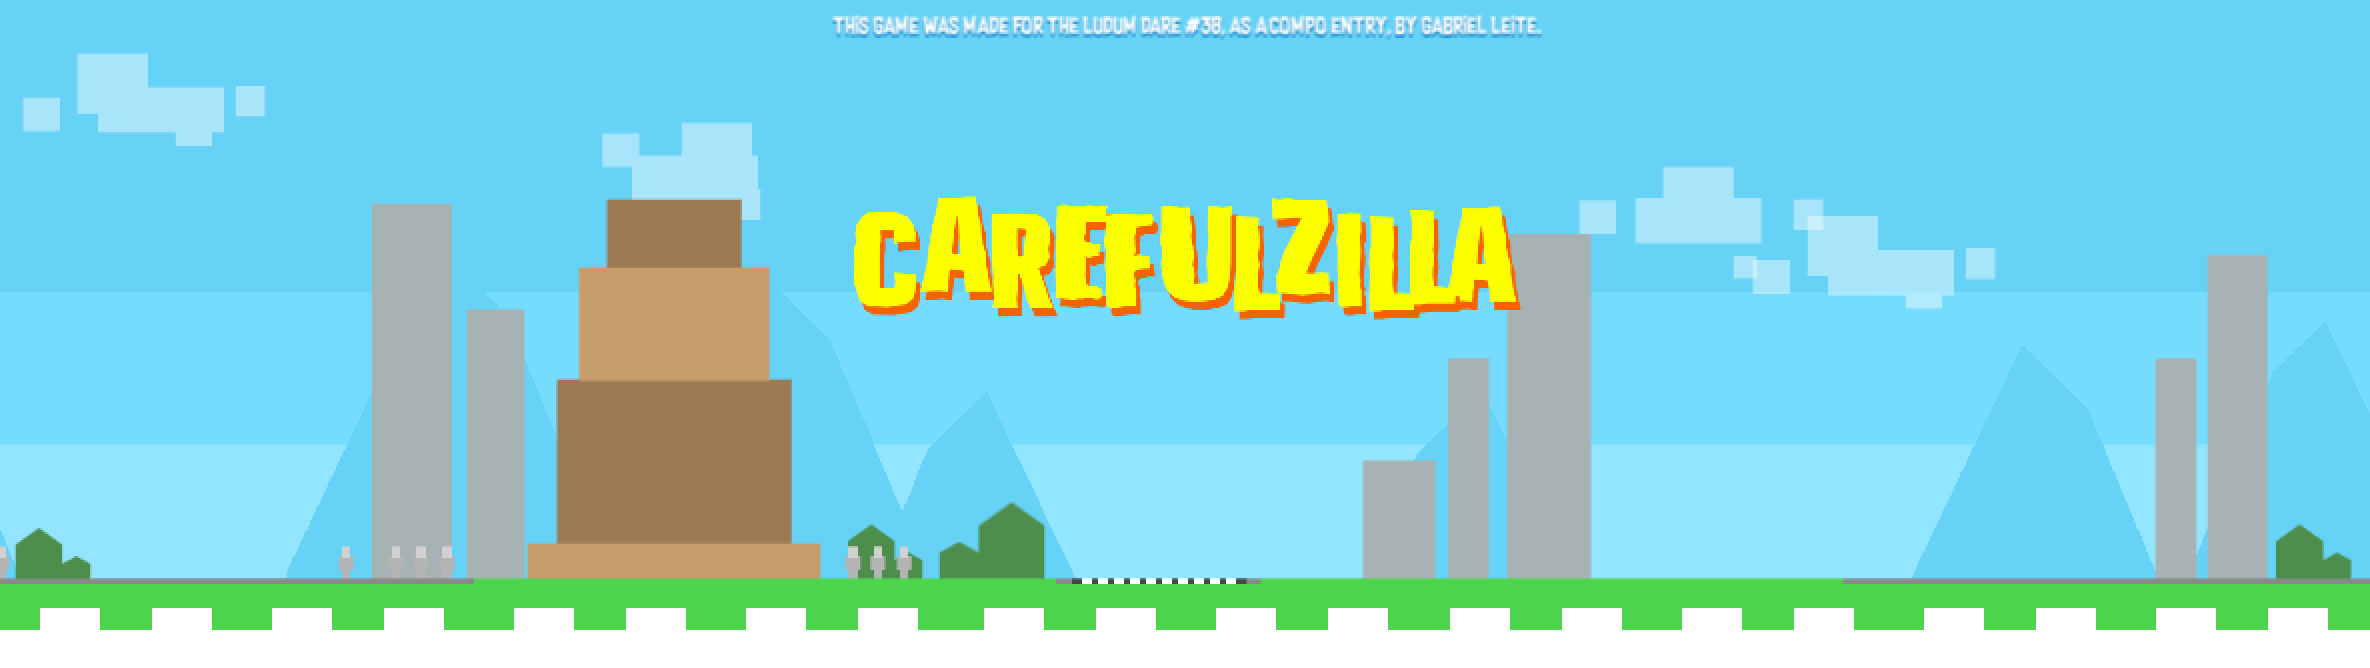 Carefulzilla